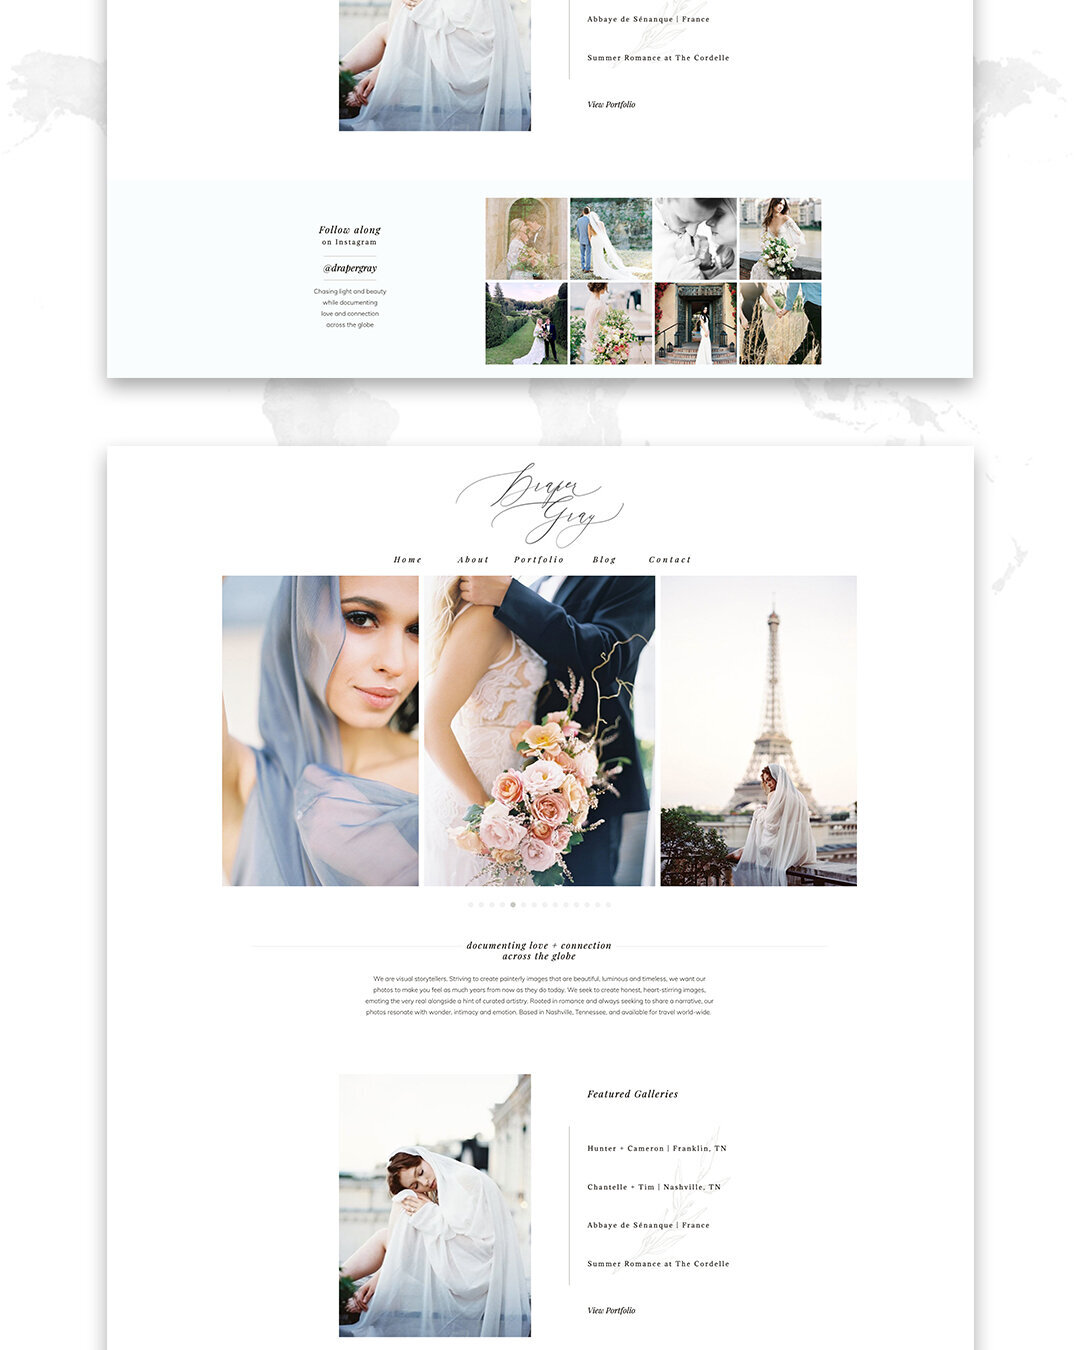 Showit-template-help-moreno-collective-Draper-Gray